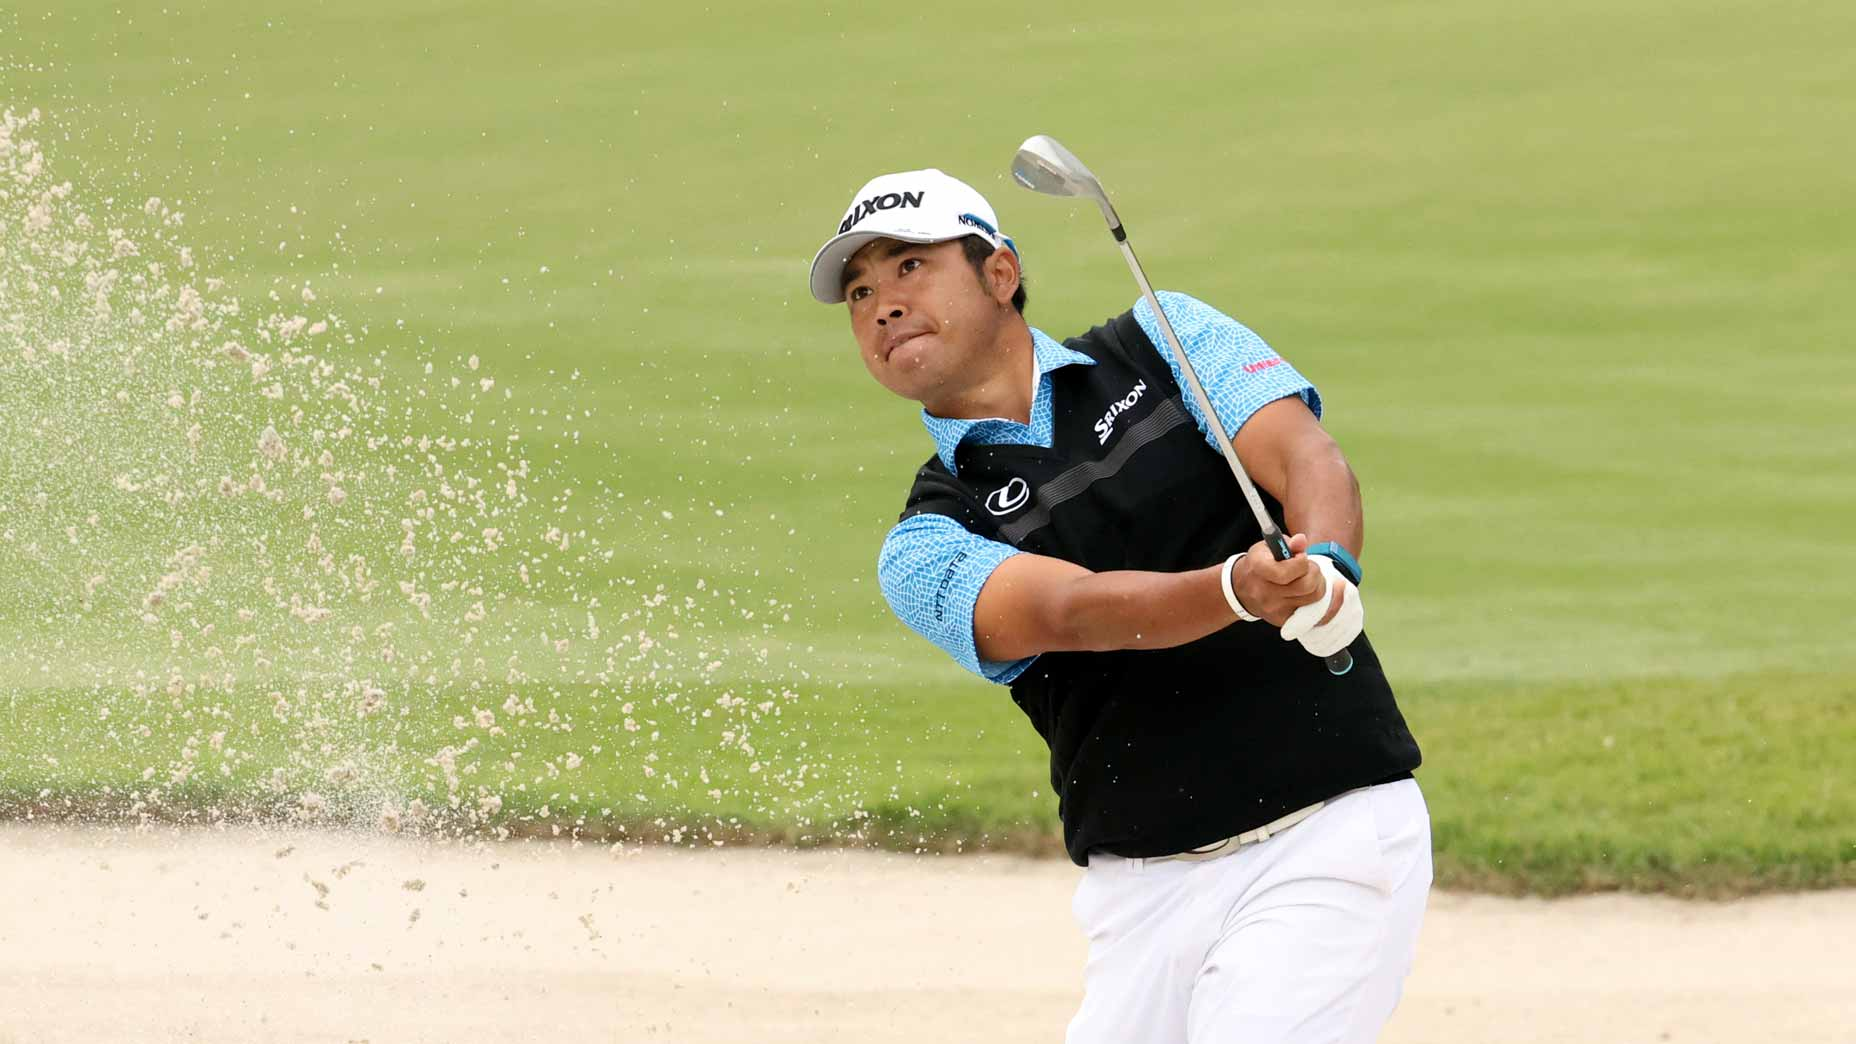 Hideki Matsuyama hits out of a bunker during the first round of the 2021 Zozo Championship in Japan